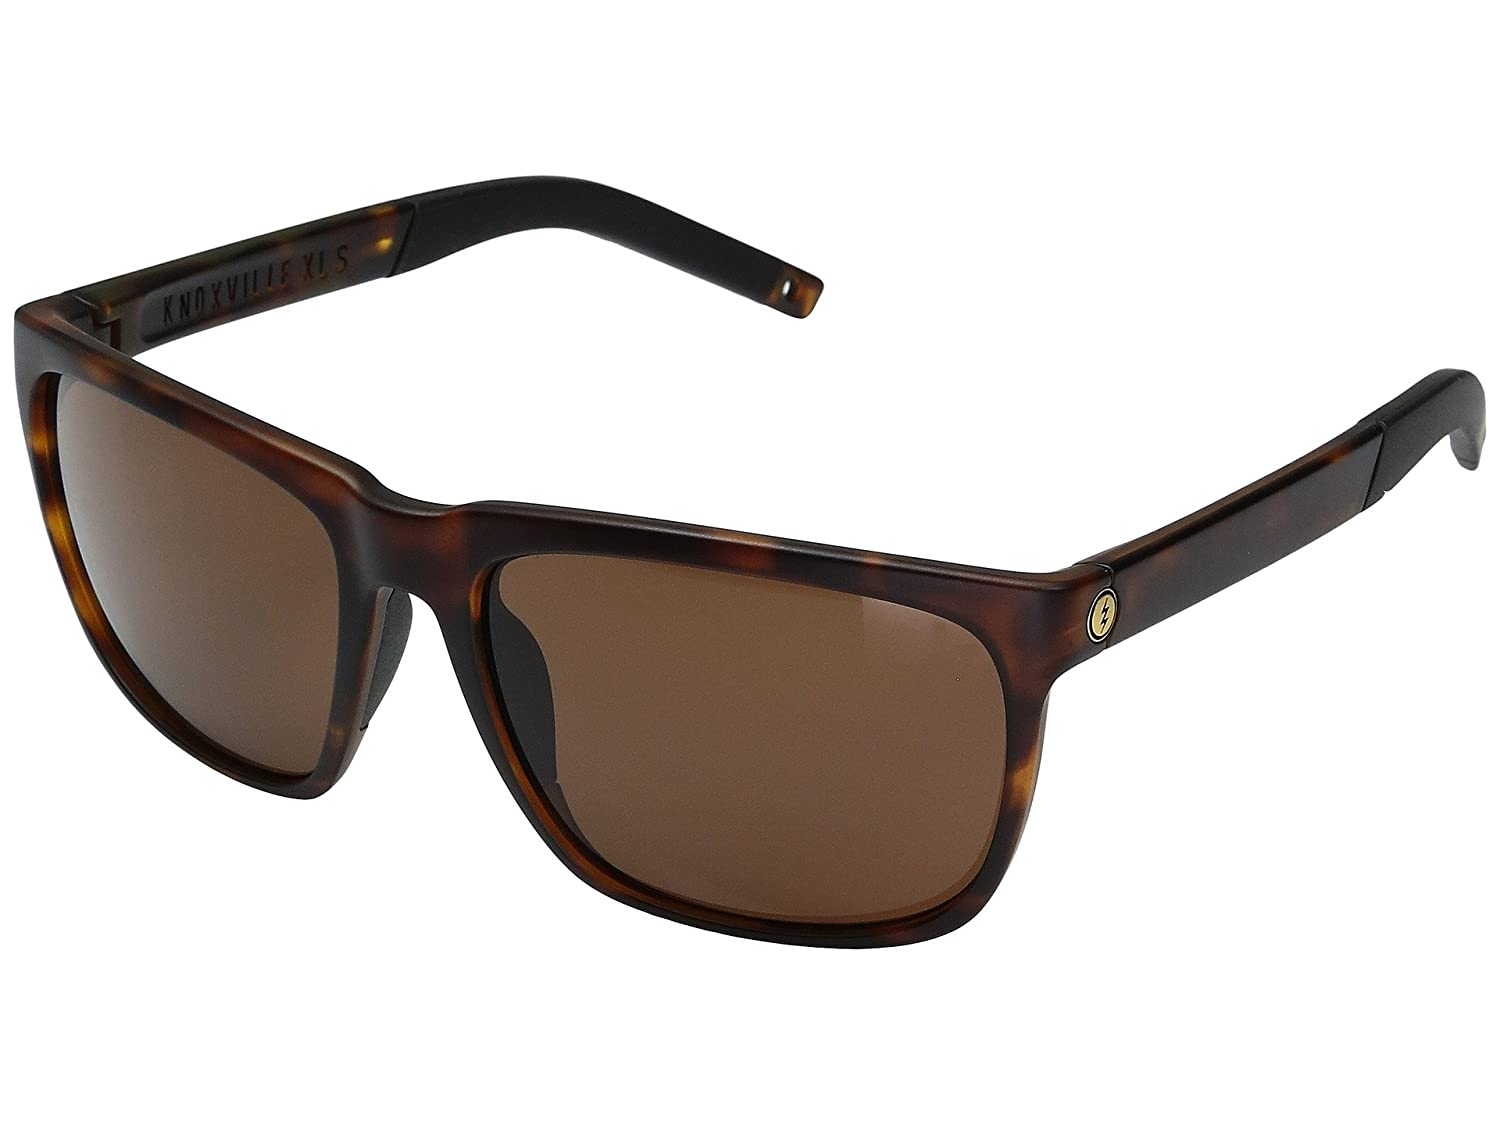 Electric Knoxville XL S Sunglasses Matte Tortoise with Ohm Bronze Lens